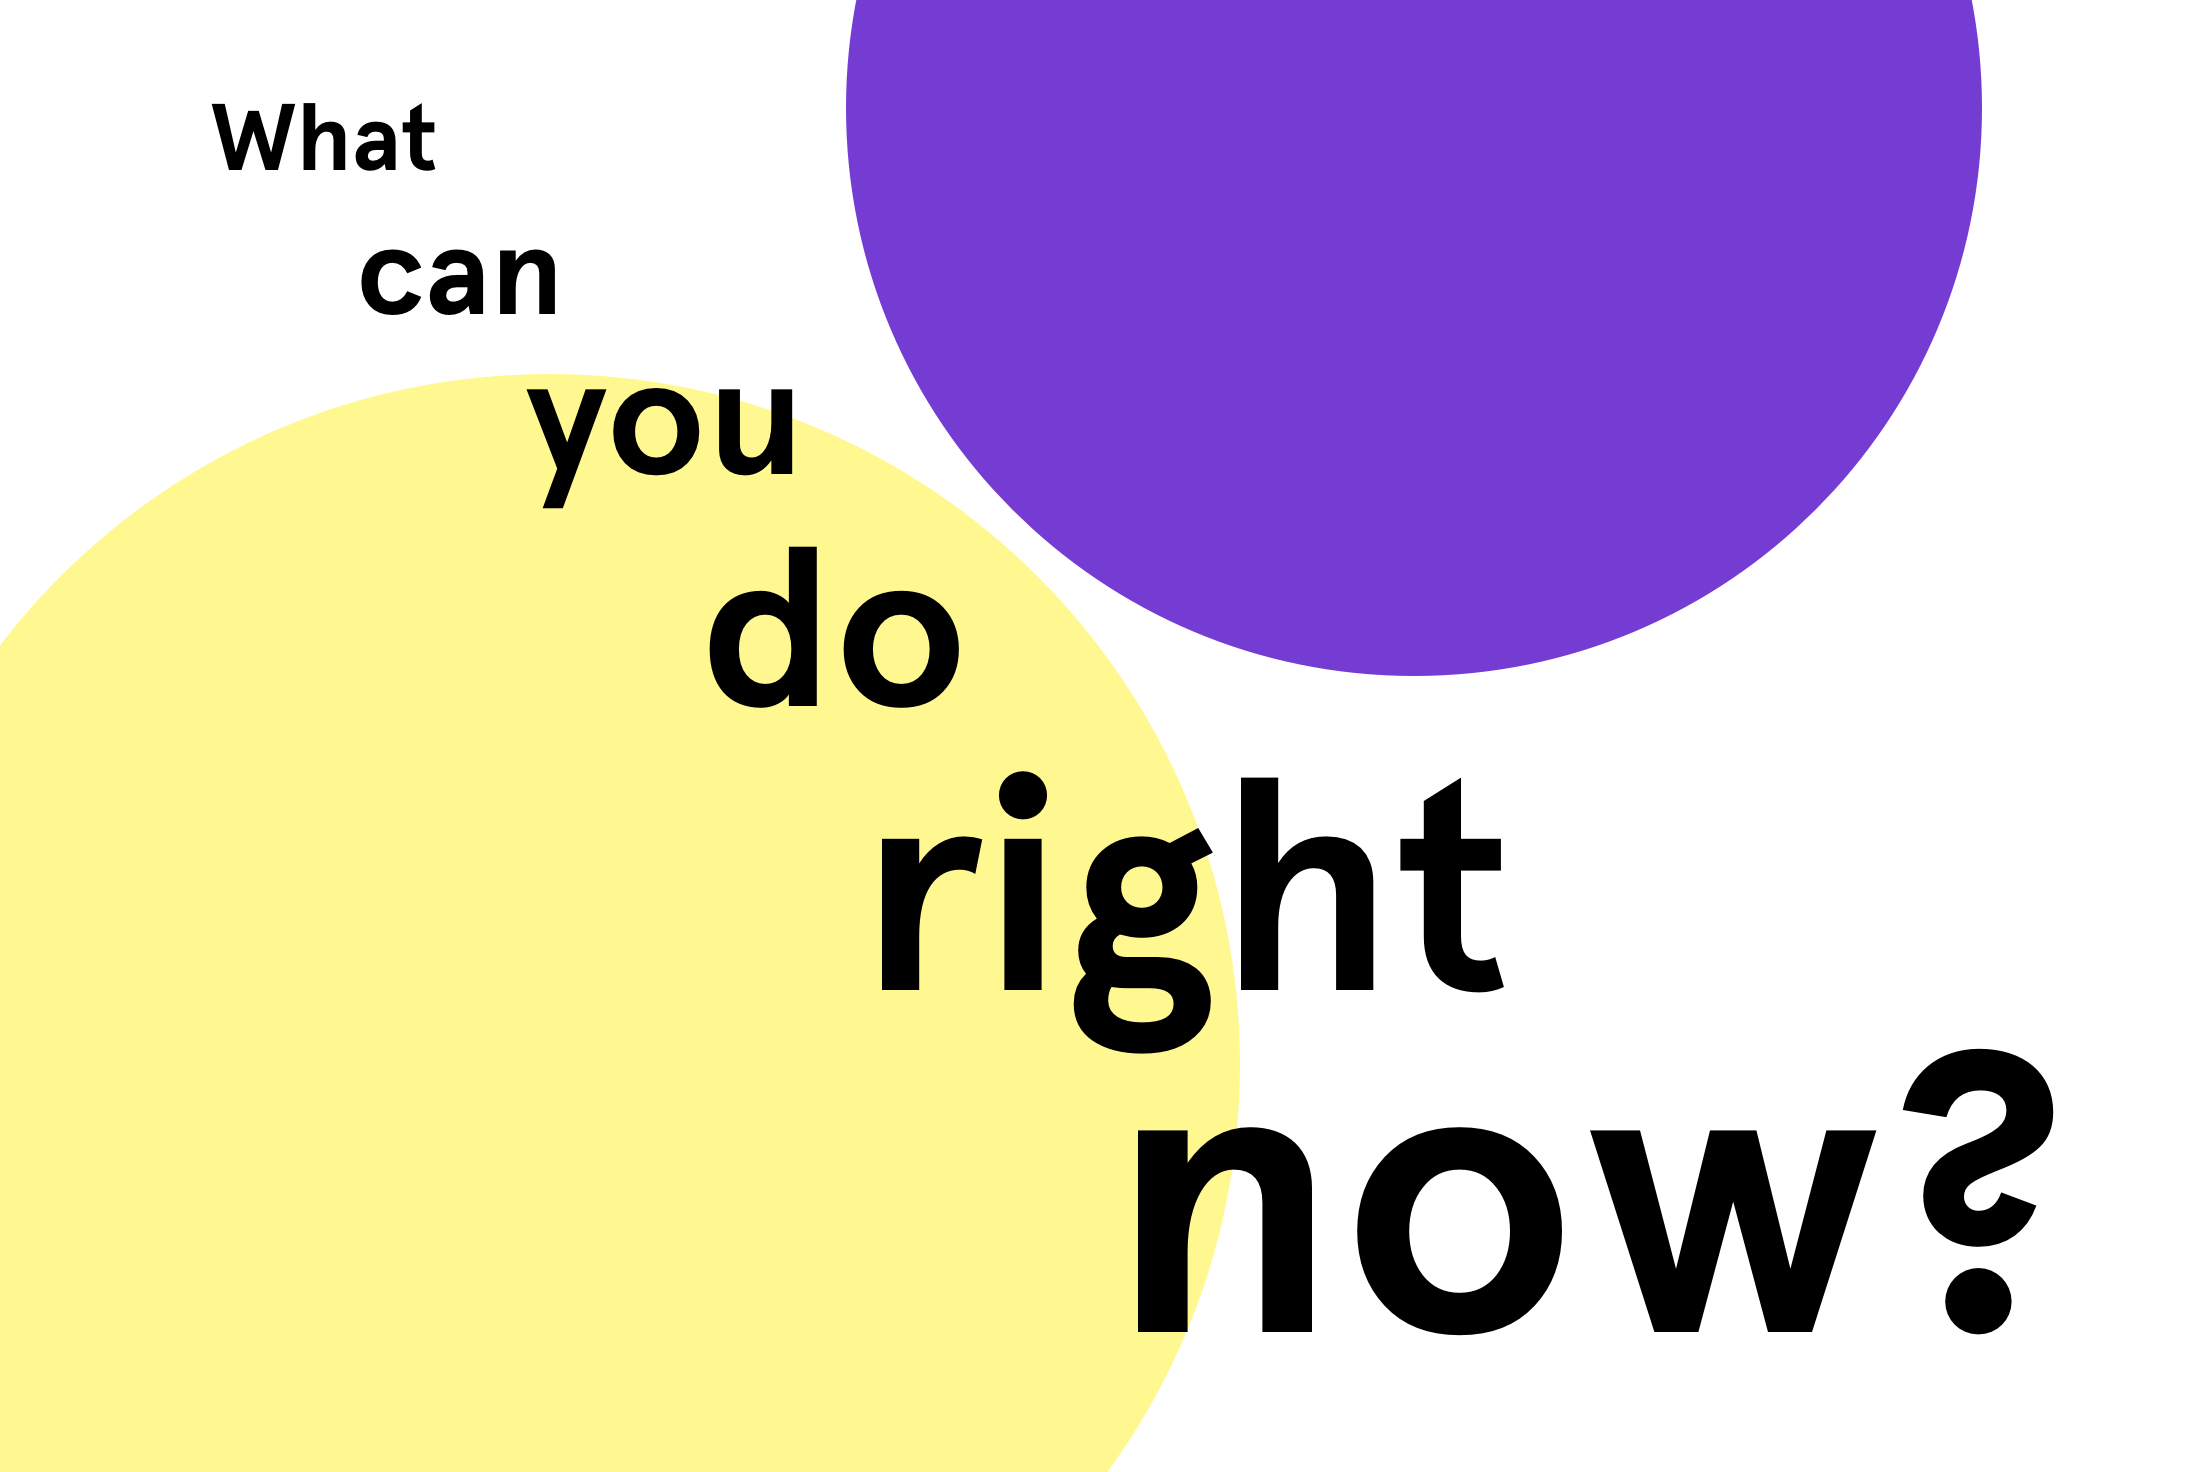 What can you do right now?